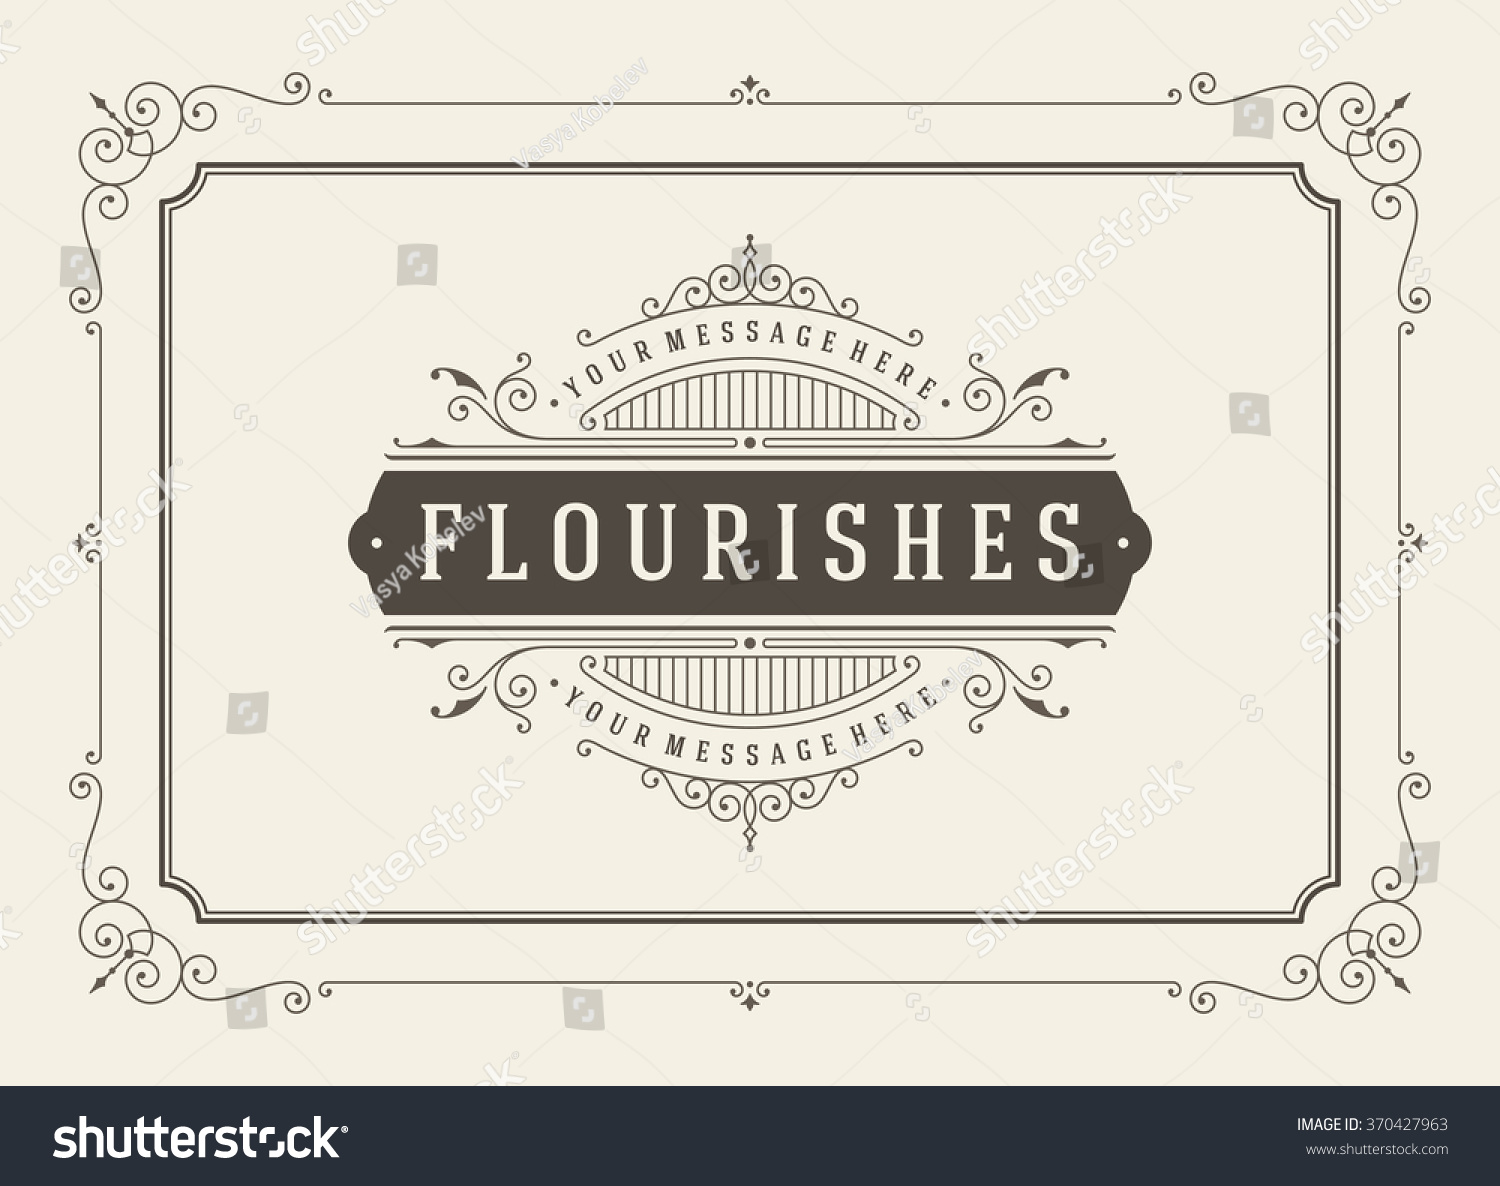 vintage or nt greeting card vector template stock vector vintage or nt greeting card vector template retro luxury invitation royal certificate flourishes frame